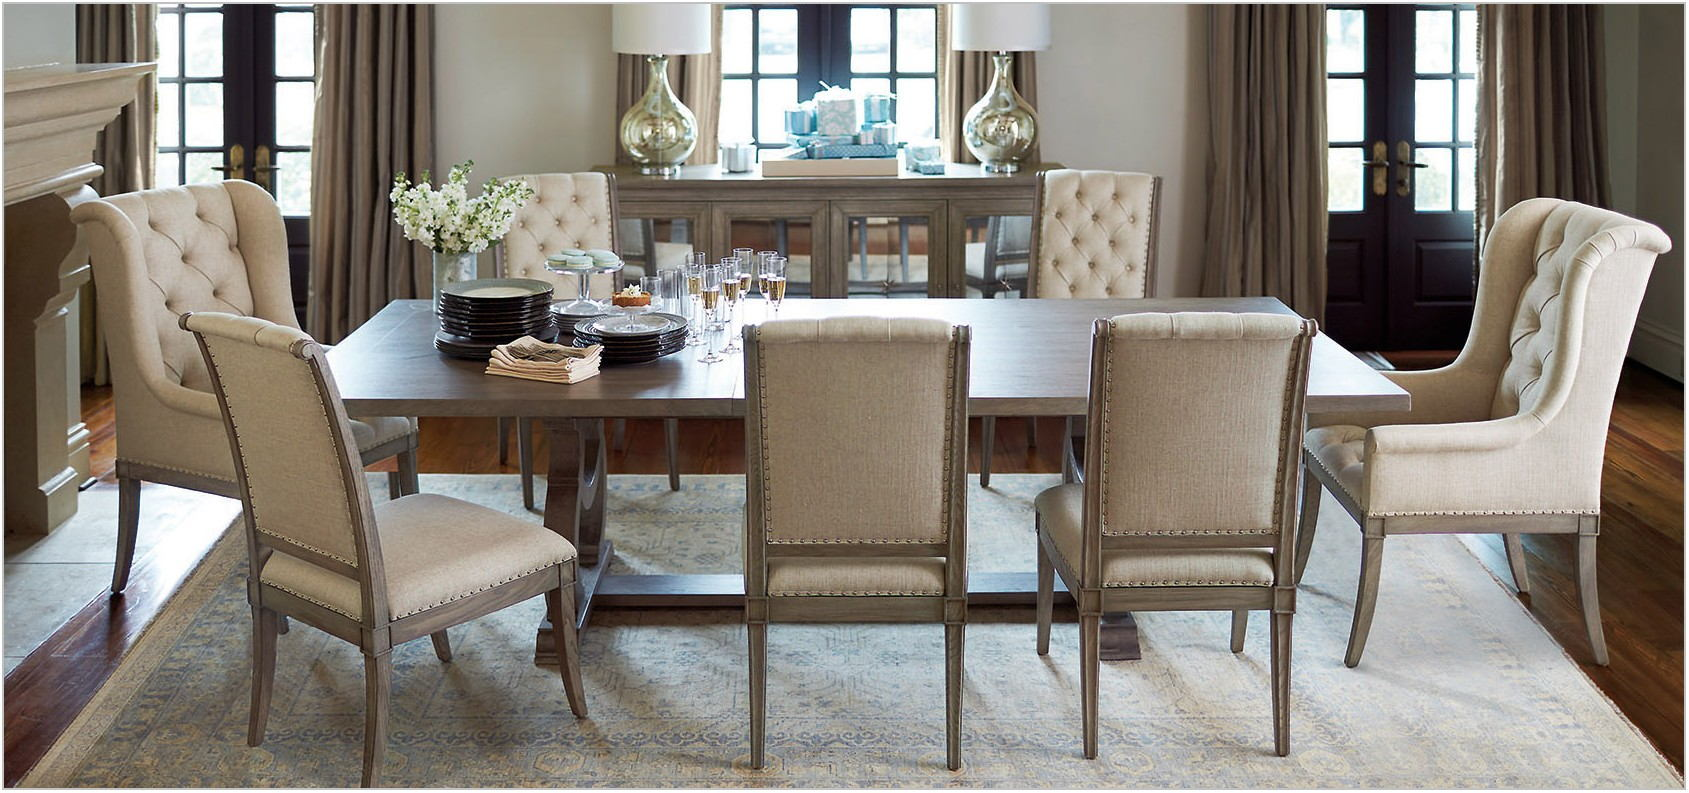 Who Sells Dining Room Chairs